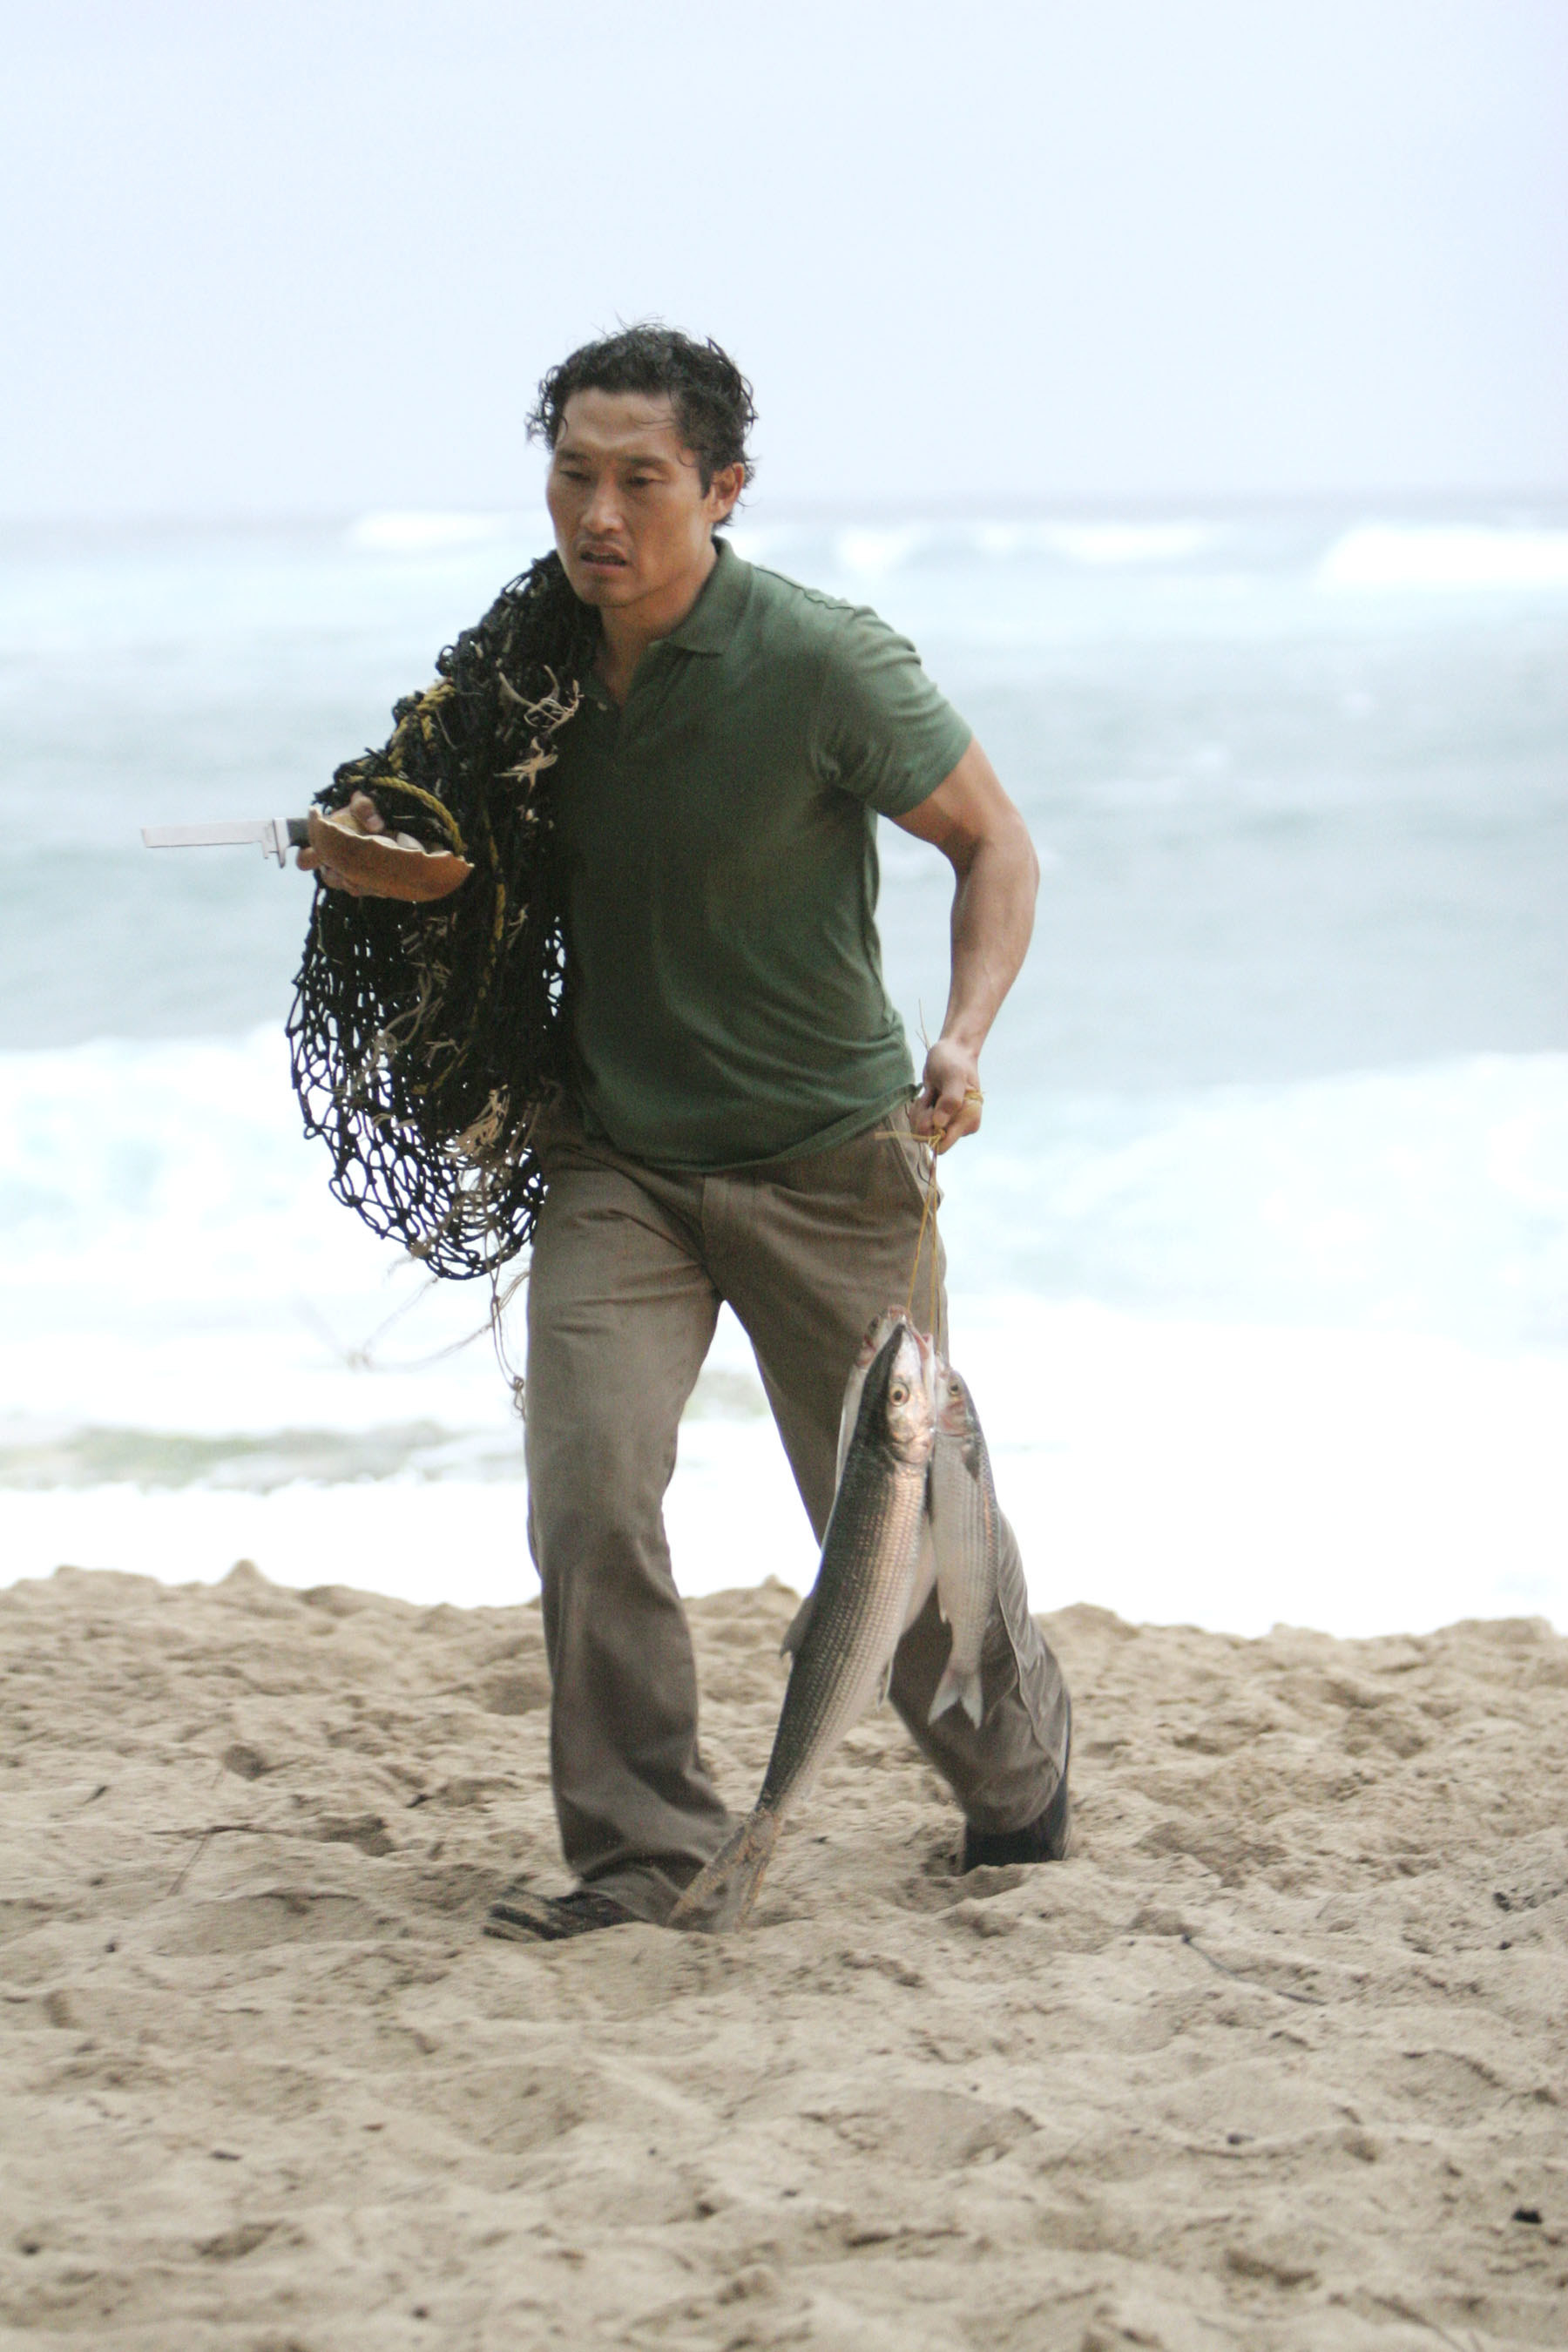 Kim carries a net and fish on the beach in the TV show Lost